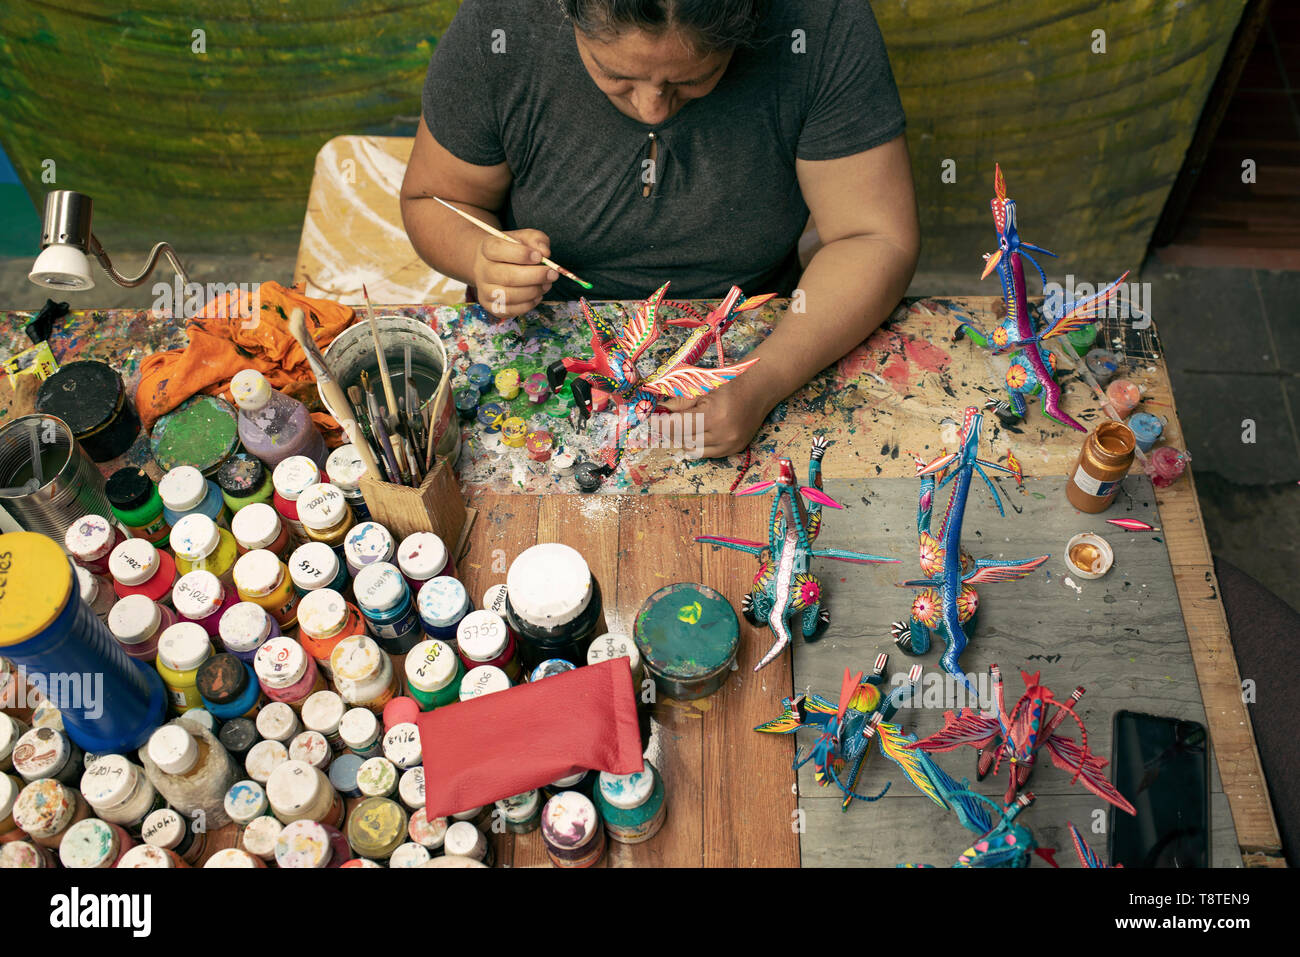 Mexican woman painting alebrijes (surreal dream-like wooden sculptures). San Martín Tilcajete, Oaxaca, Mexico. Apr 2019 - Stock Image